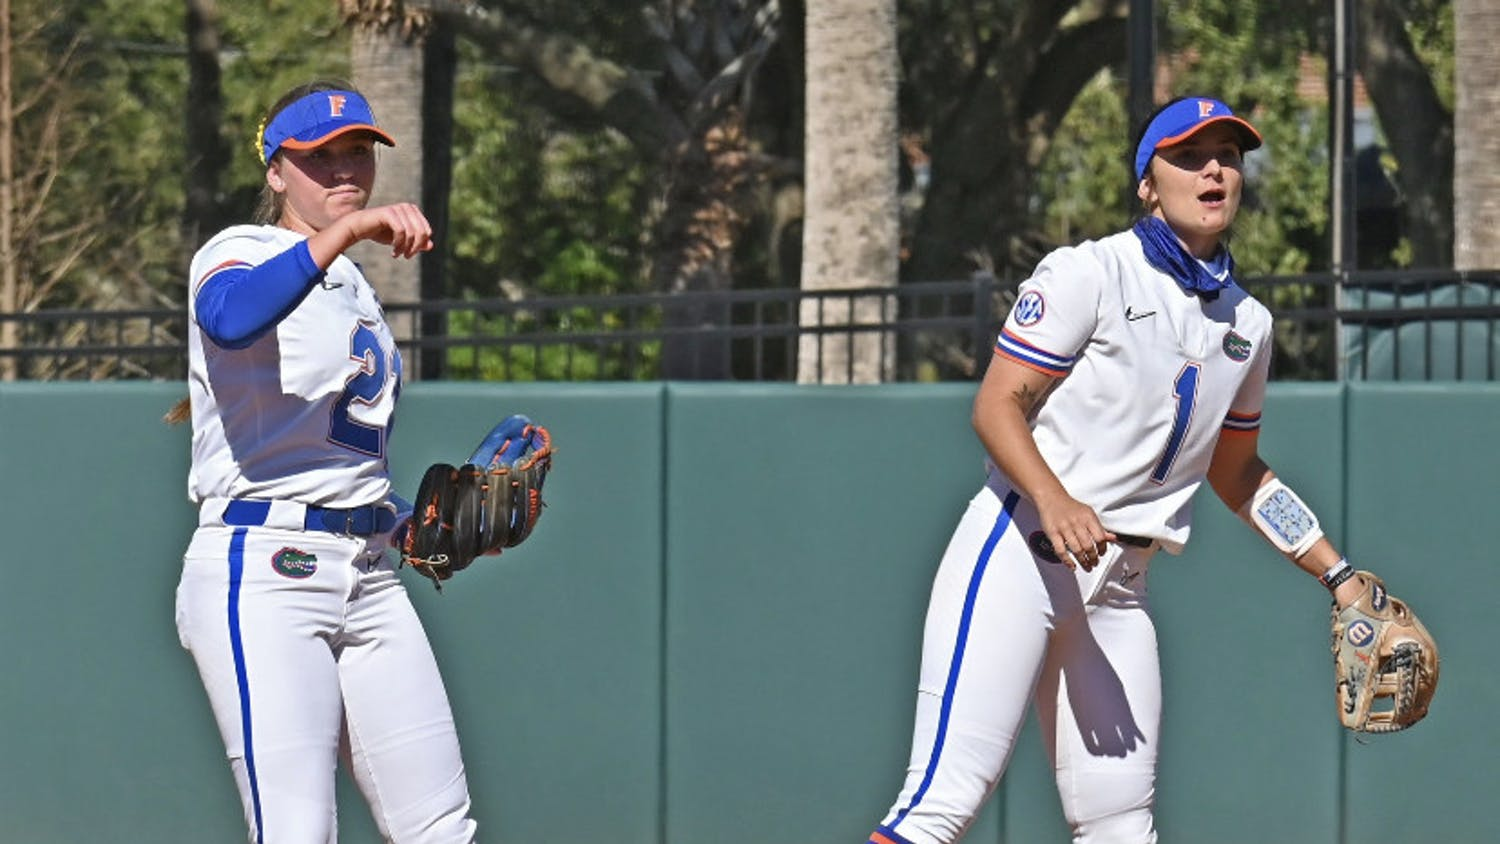 Senior Hannah Adams (right) notched her second walk off of the season Sunday against McNeese State.